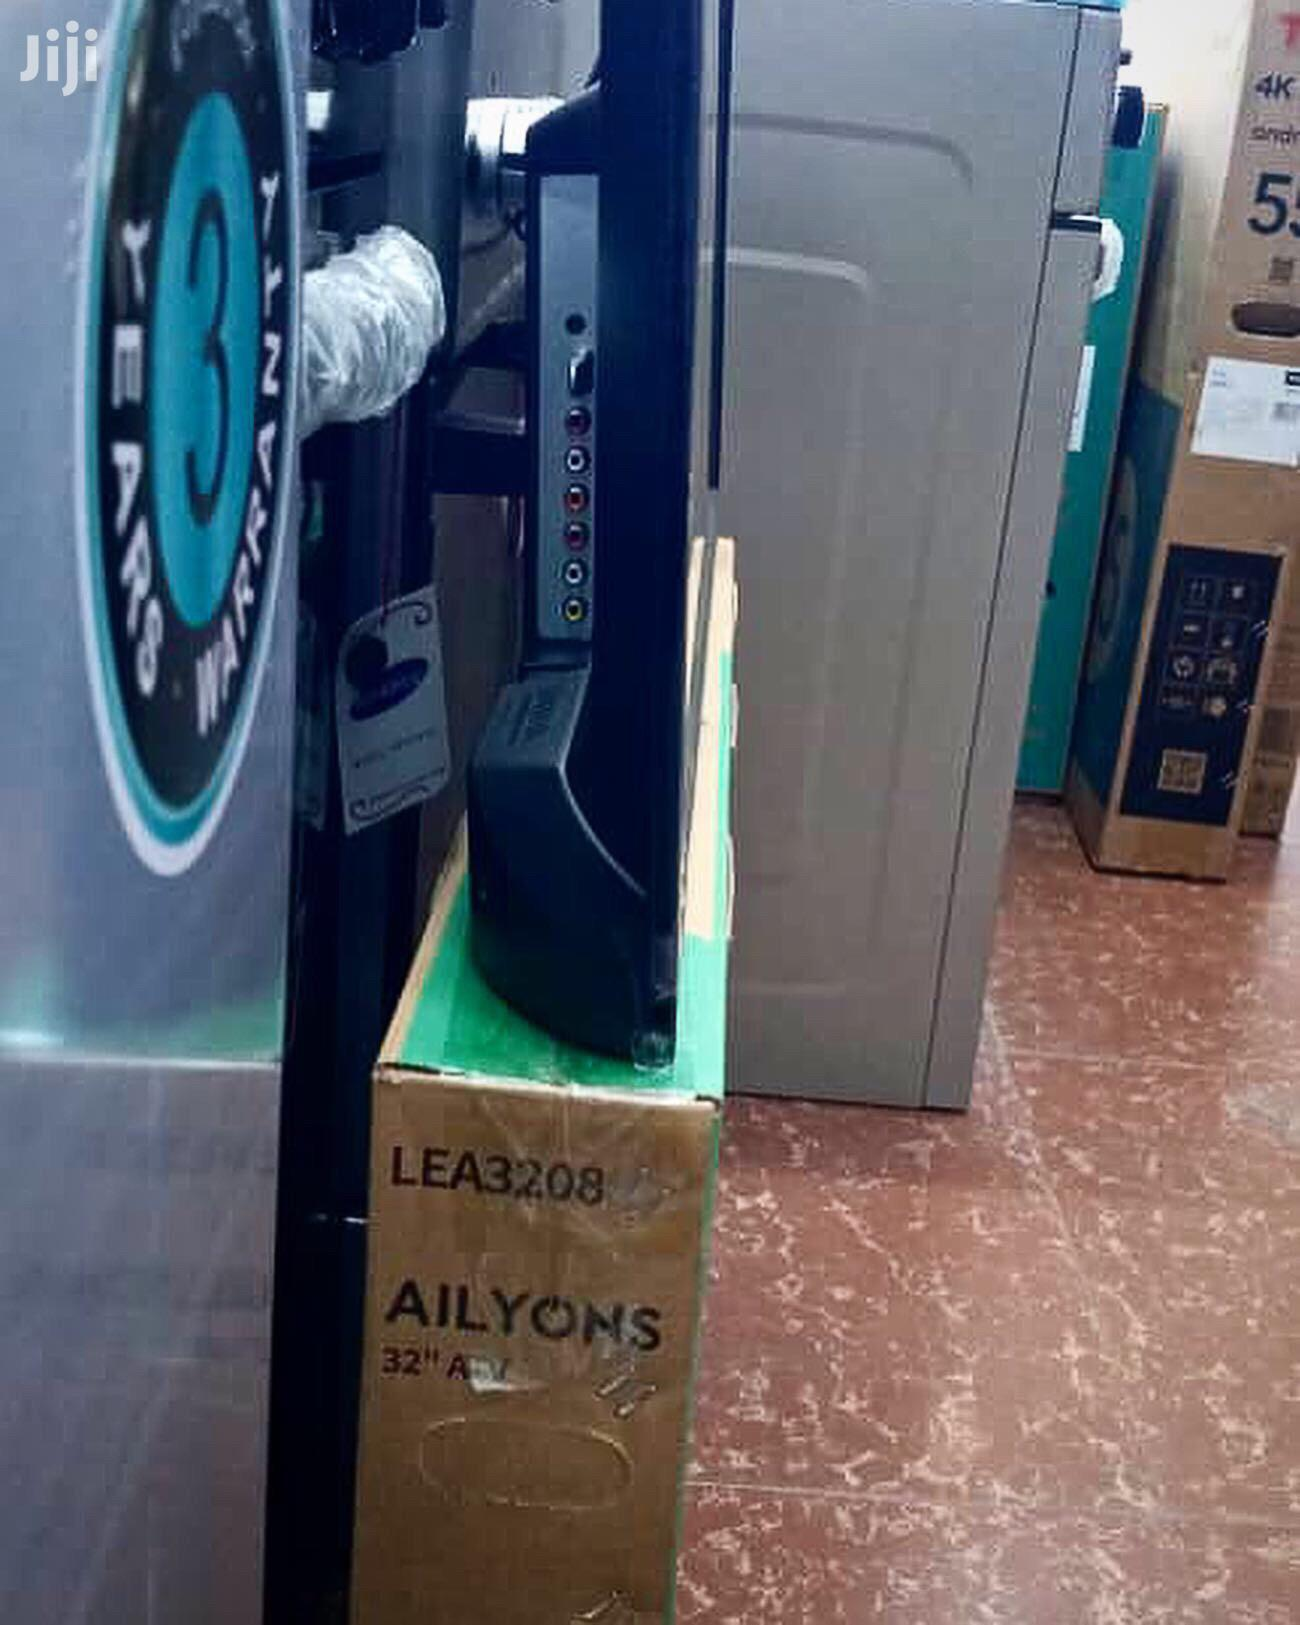 "Ailyons 32"" LED TV 